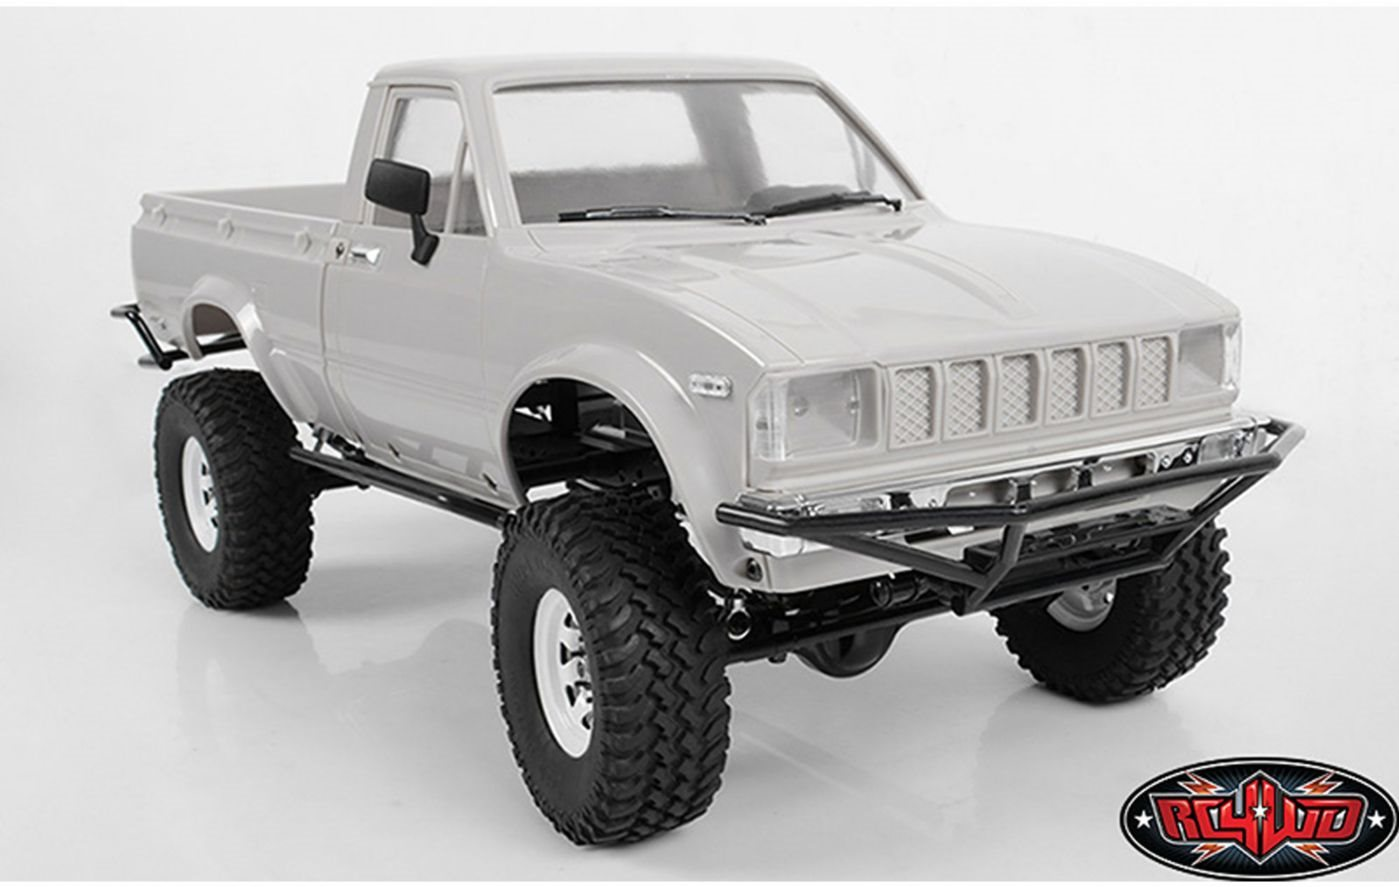 RC 4WD Trail Finder 2 Truck Kit w/Mojave II Body